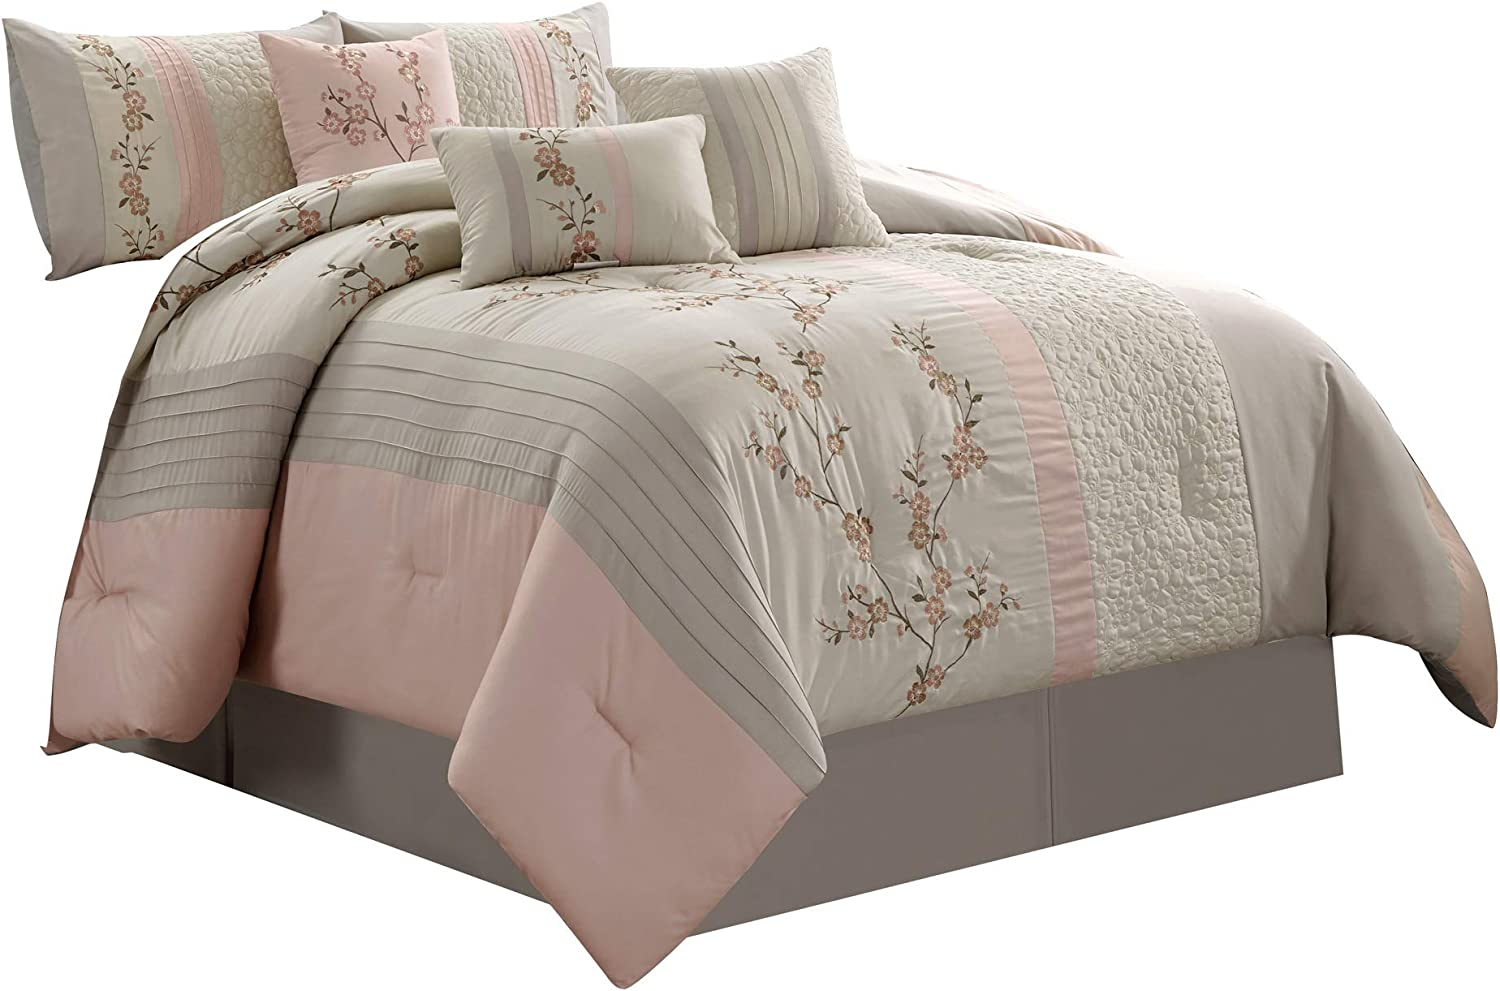 Chezmoi Collection Linnea 7-Piece Luxury Cherry Blossom Floral Embroidery Bedding Comforter Set, Queen, Blush/Neutral/Light Taupe